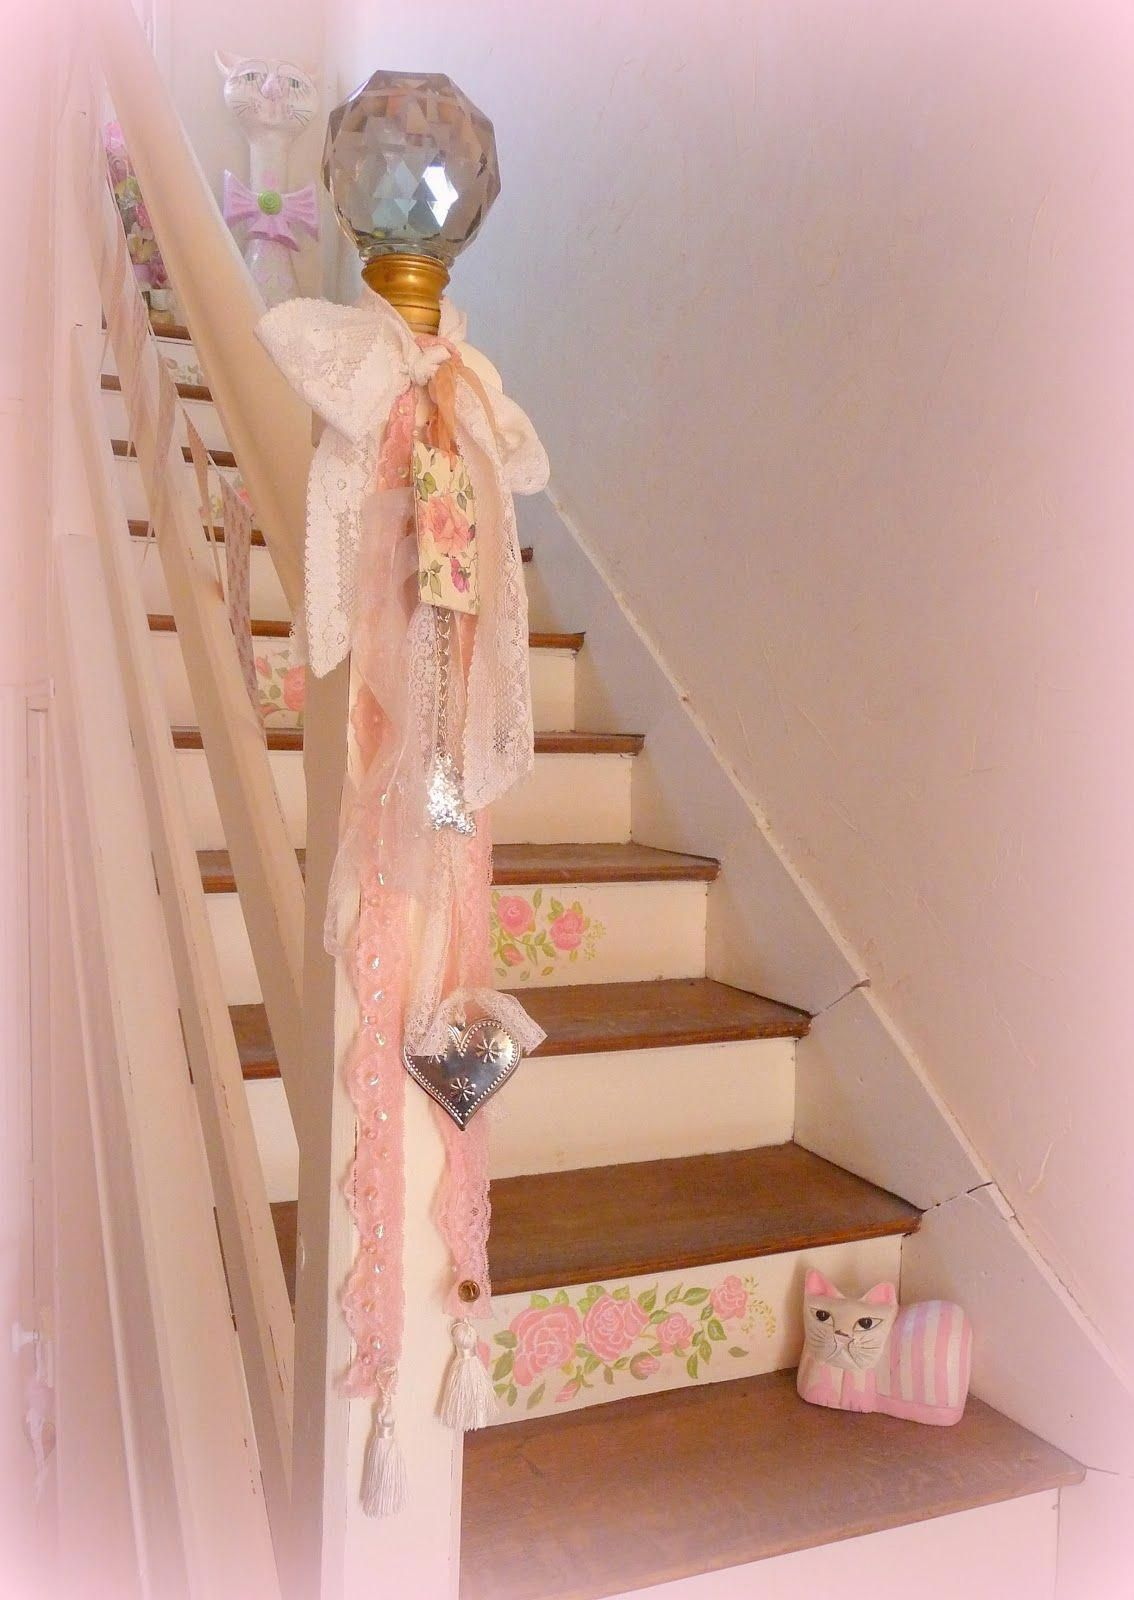 MY SHABBY FRENCH LIFE STAIRS TO HEAVEN ESCALIER SHABBY